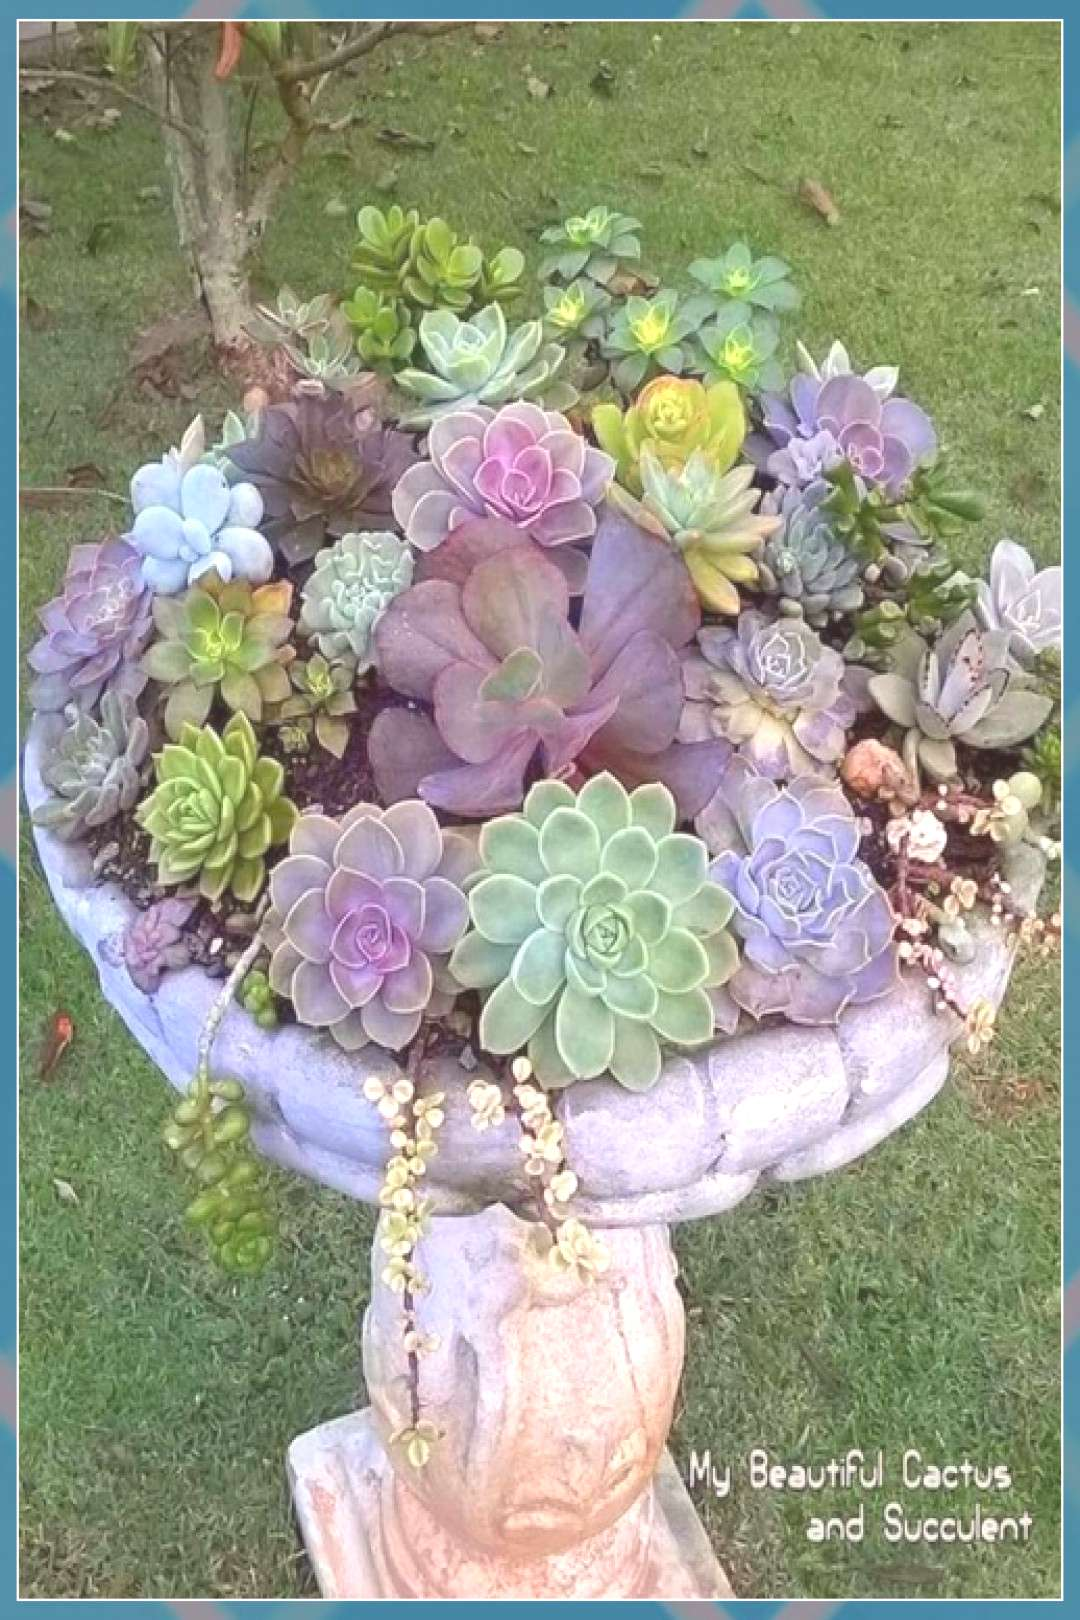 15 most beautiful container garden flowers ideas for your home Veranda € ... ... flowers plants v